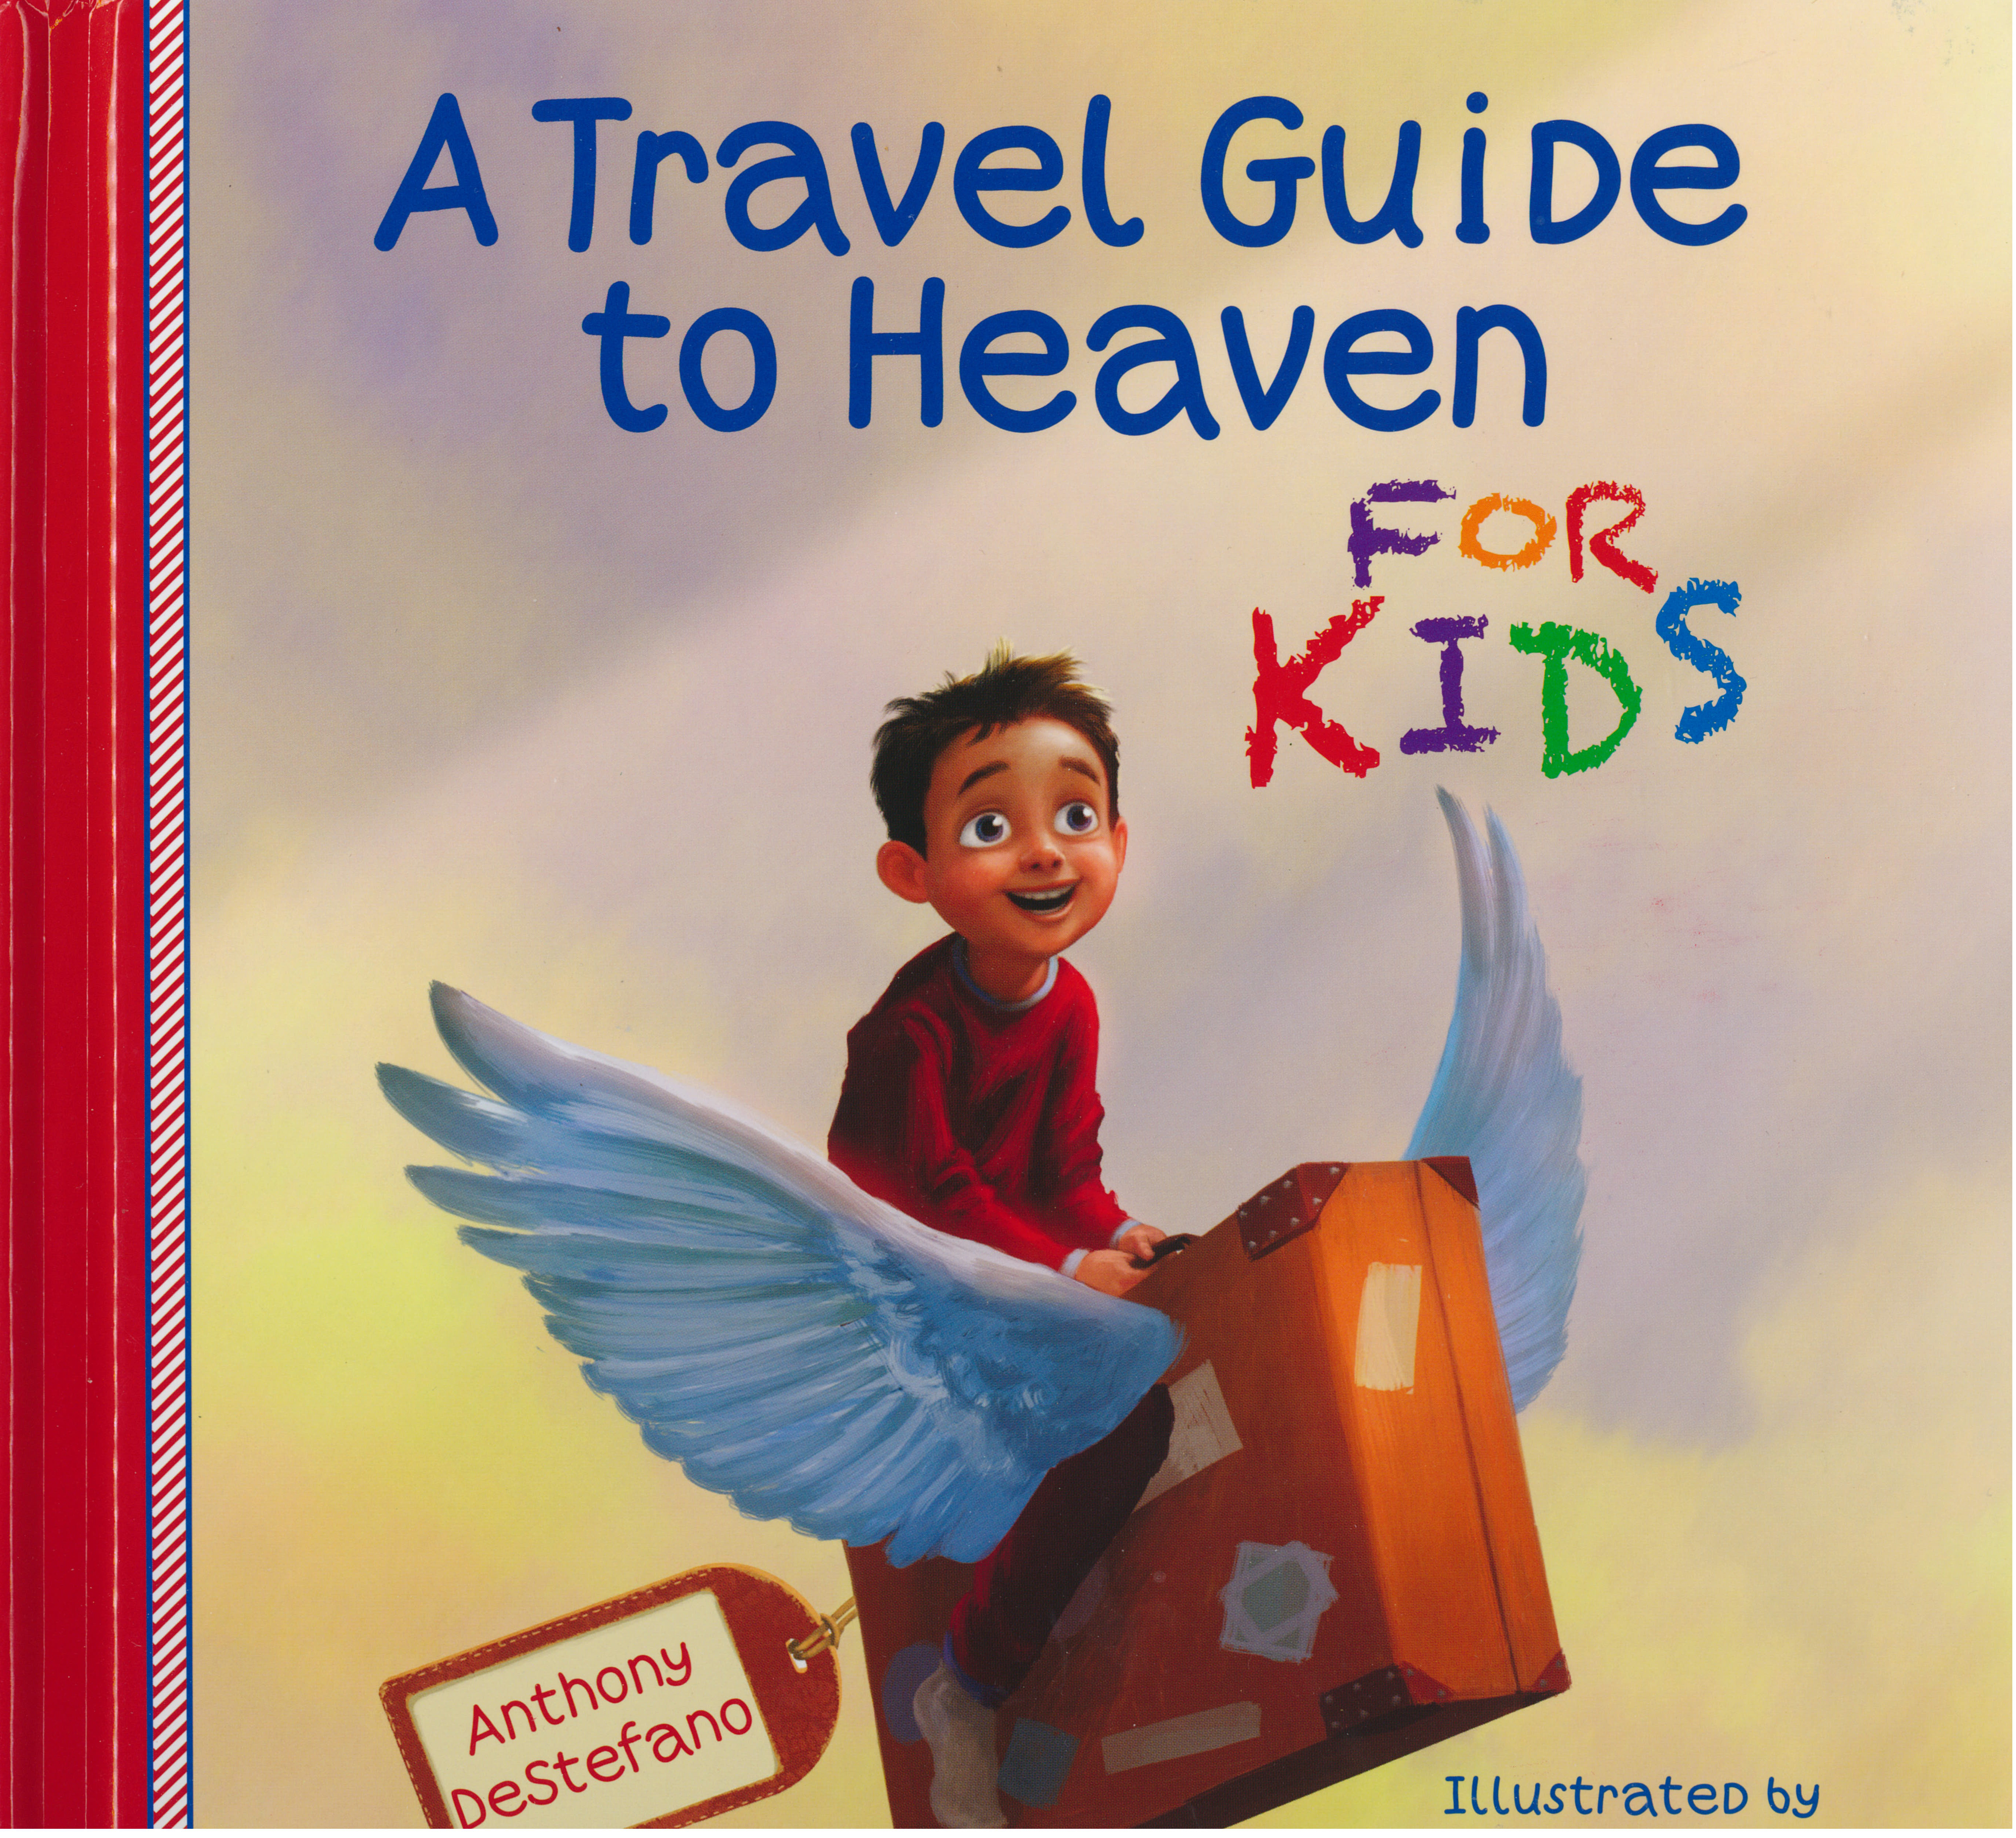 A Travel Guide to Heaven For Kids by Anthony DeStefano 108-9780736955096